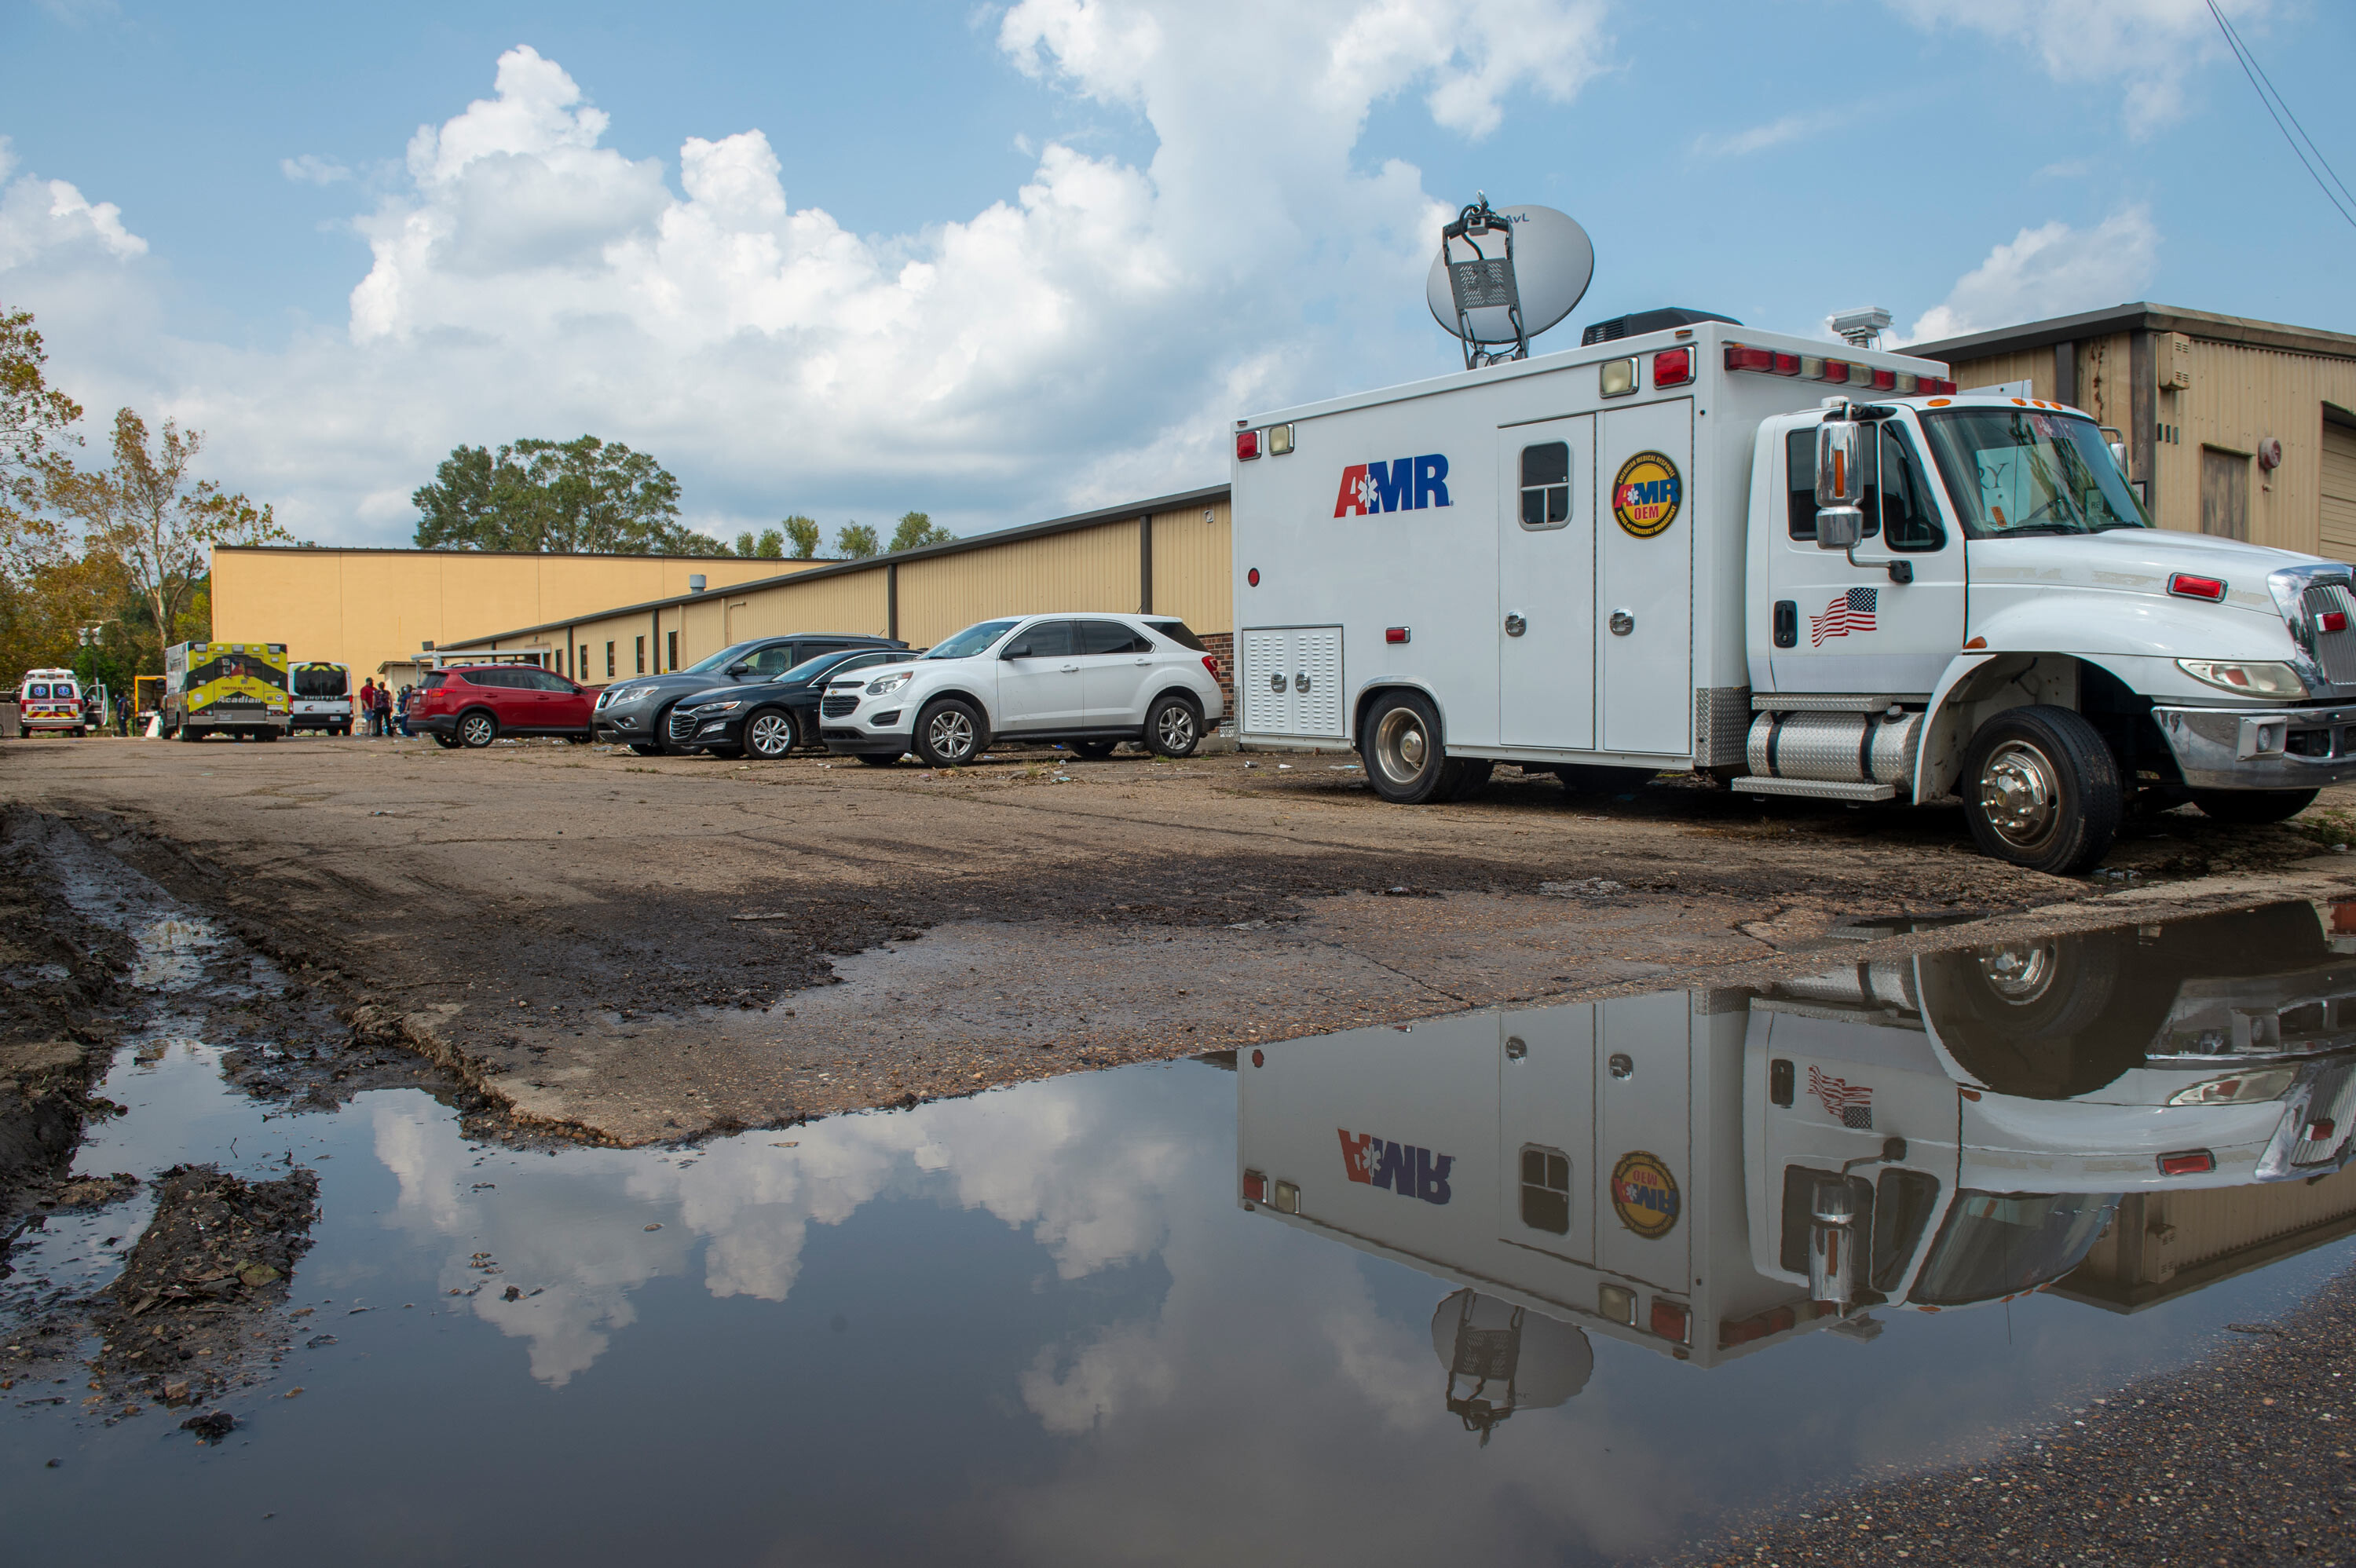 Louisiana Department of Health aware of plans for nursing homes to use warehouse for evacuation site